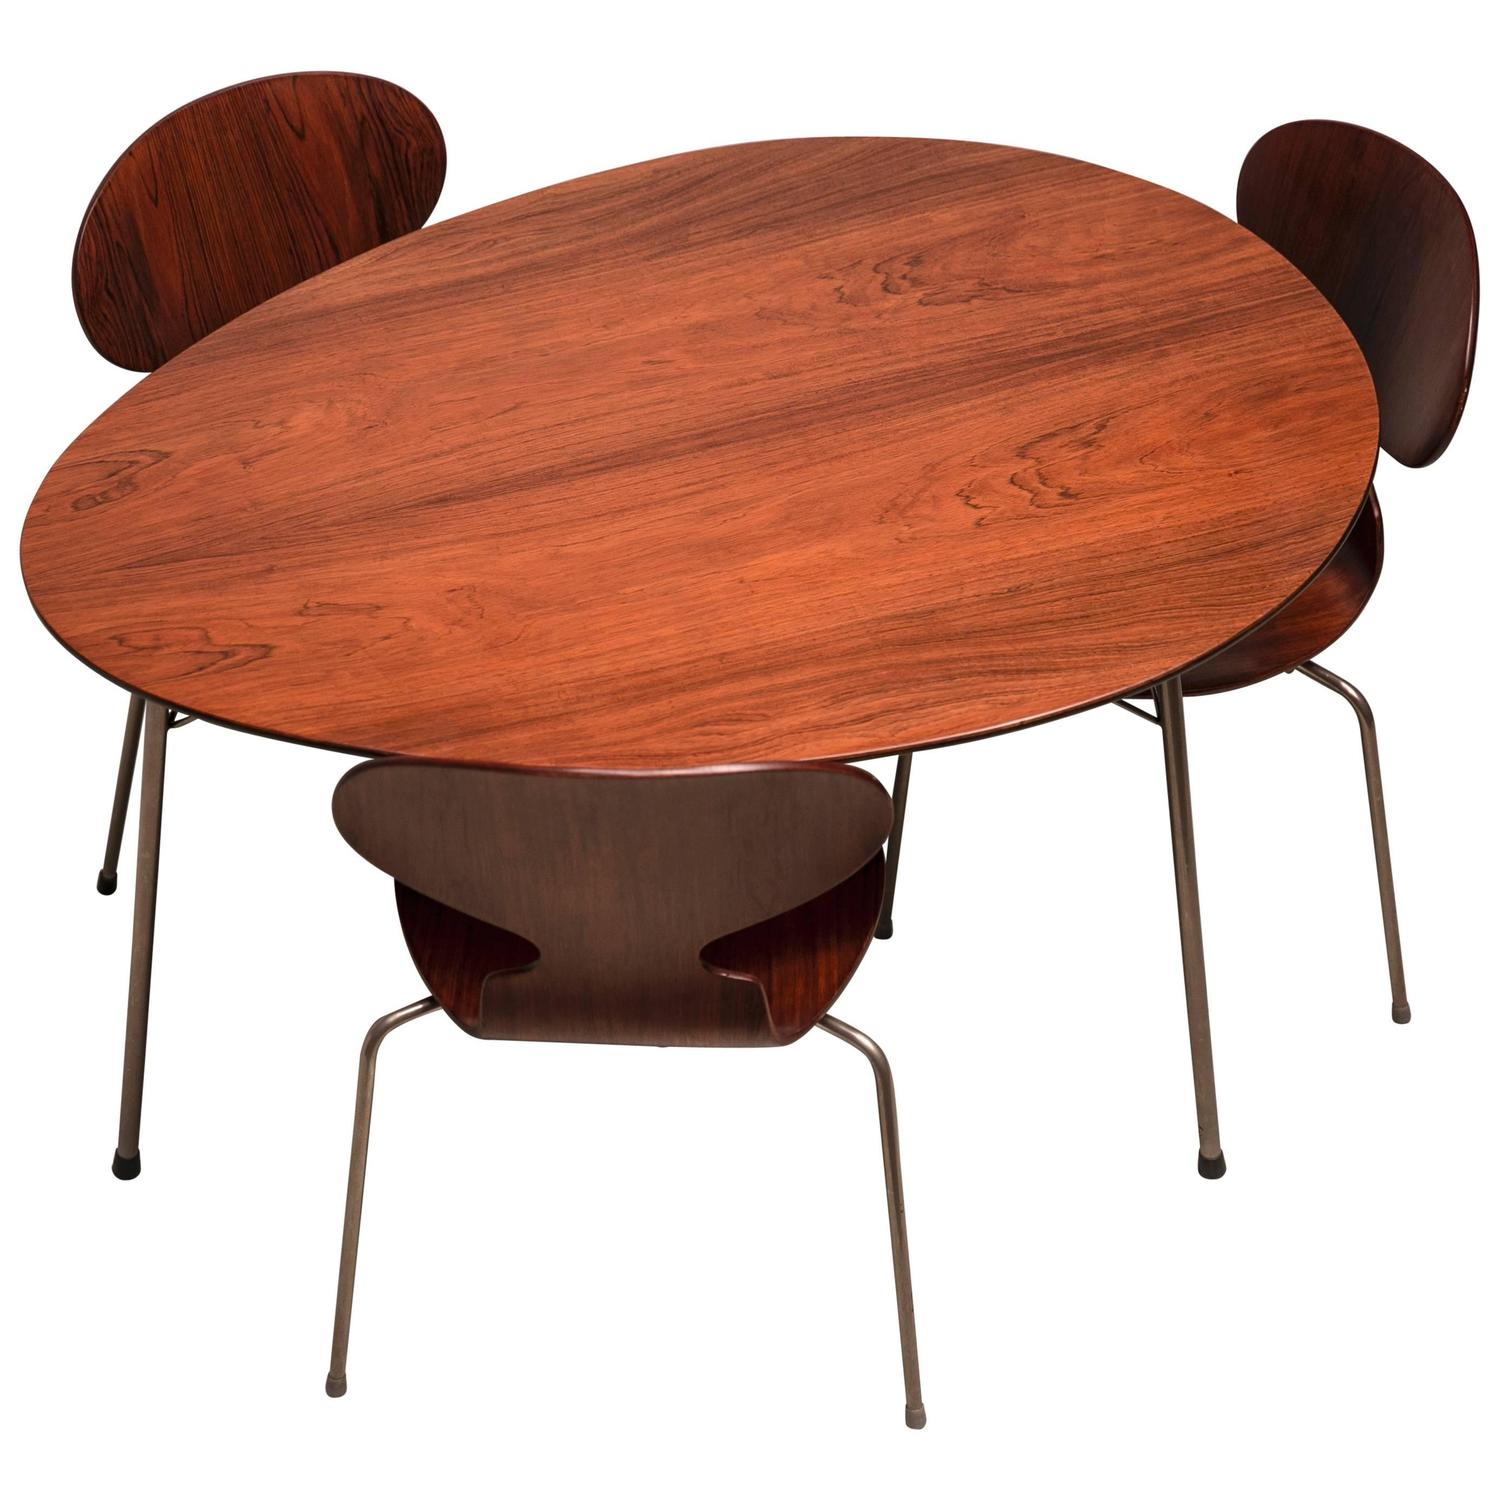 Exceptional Early Brazilian Rosewood Egg Table and Ant Chairs by